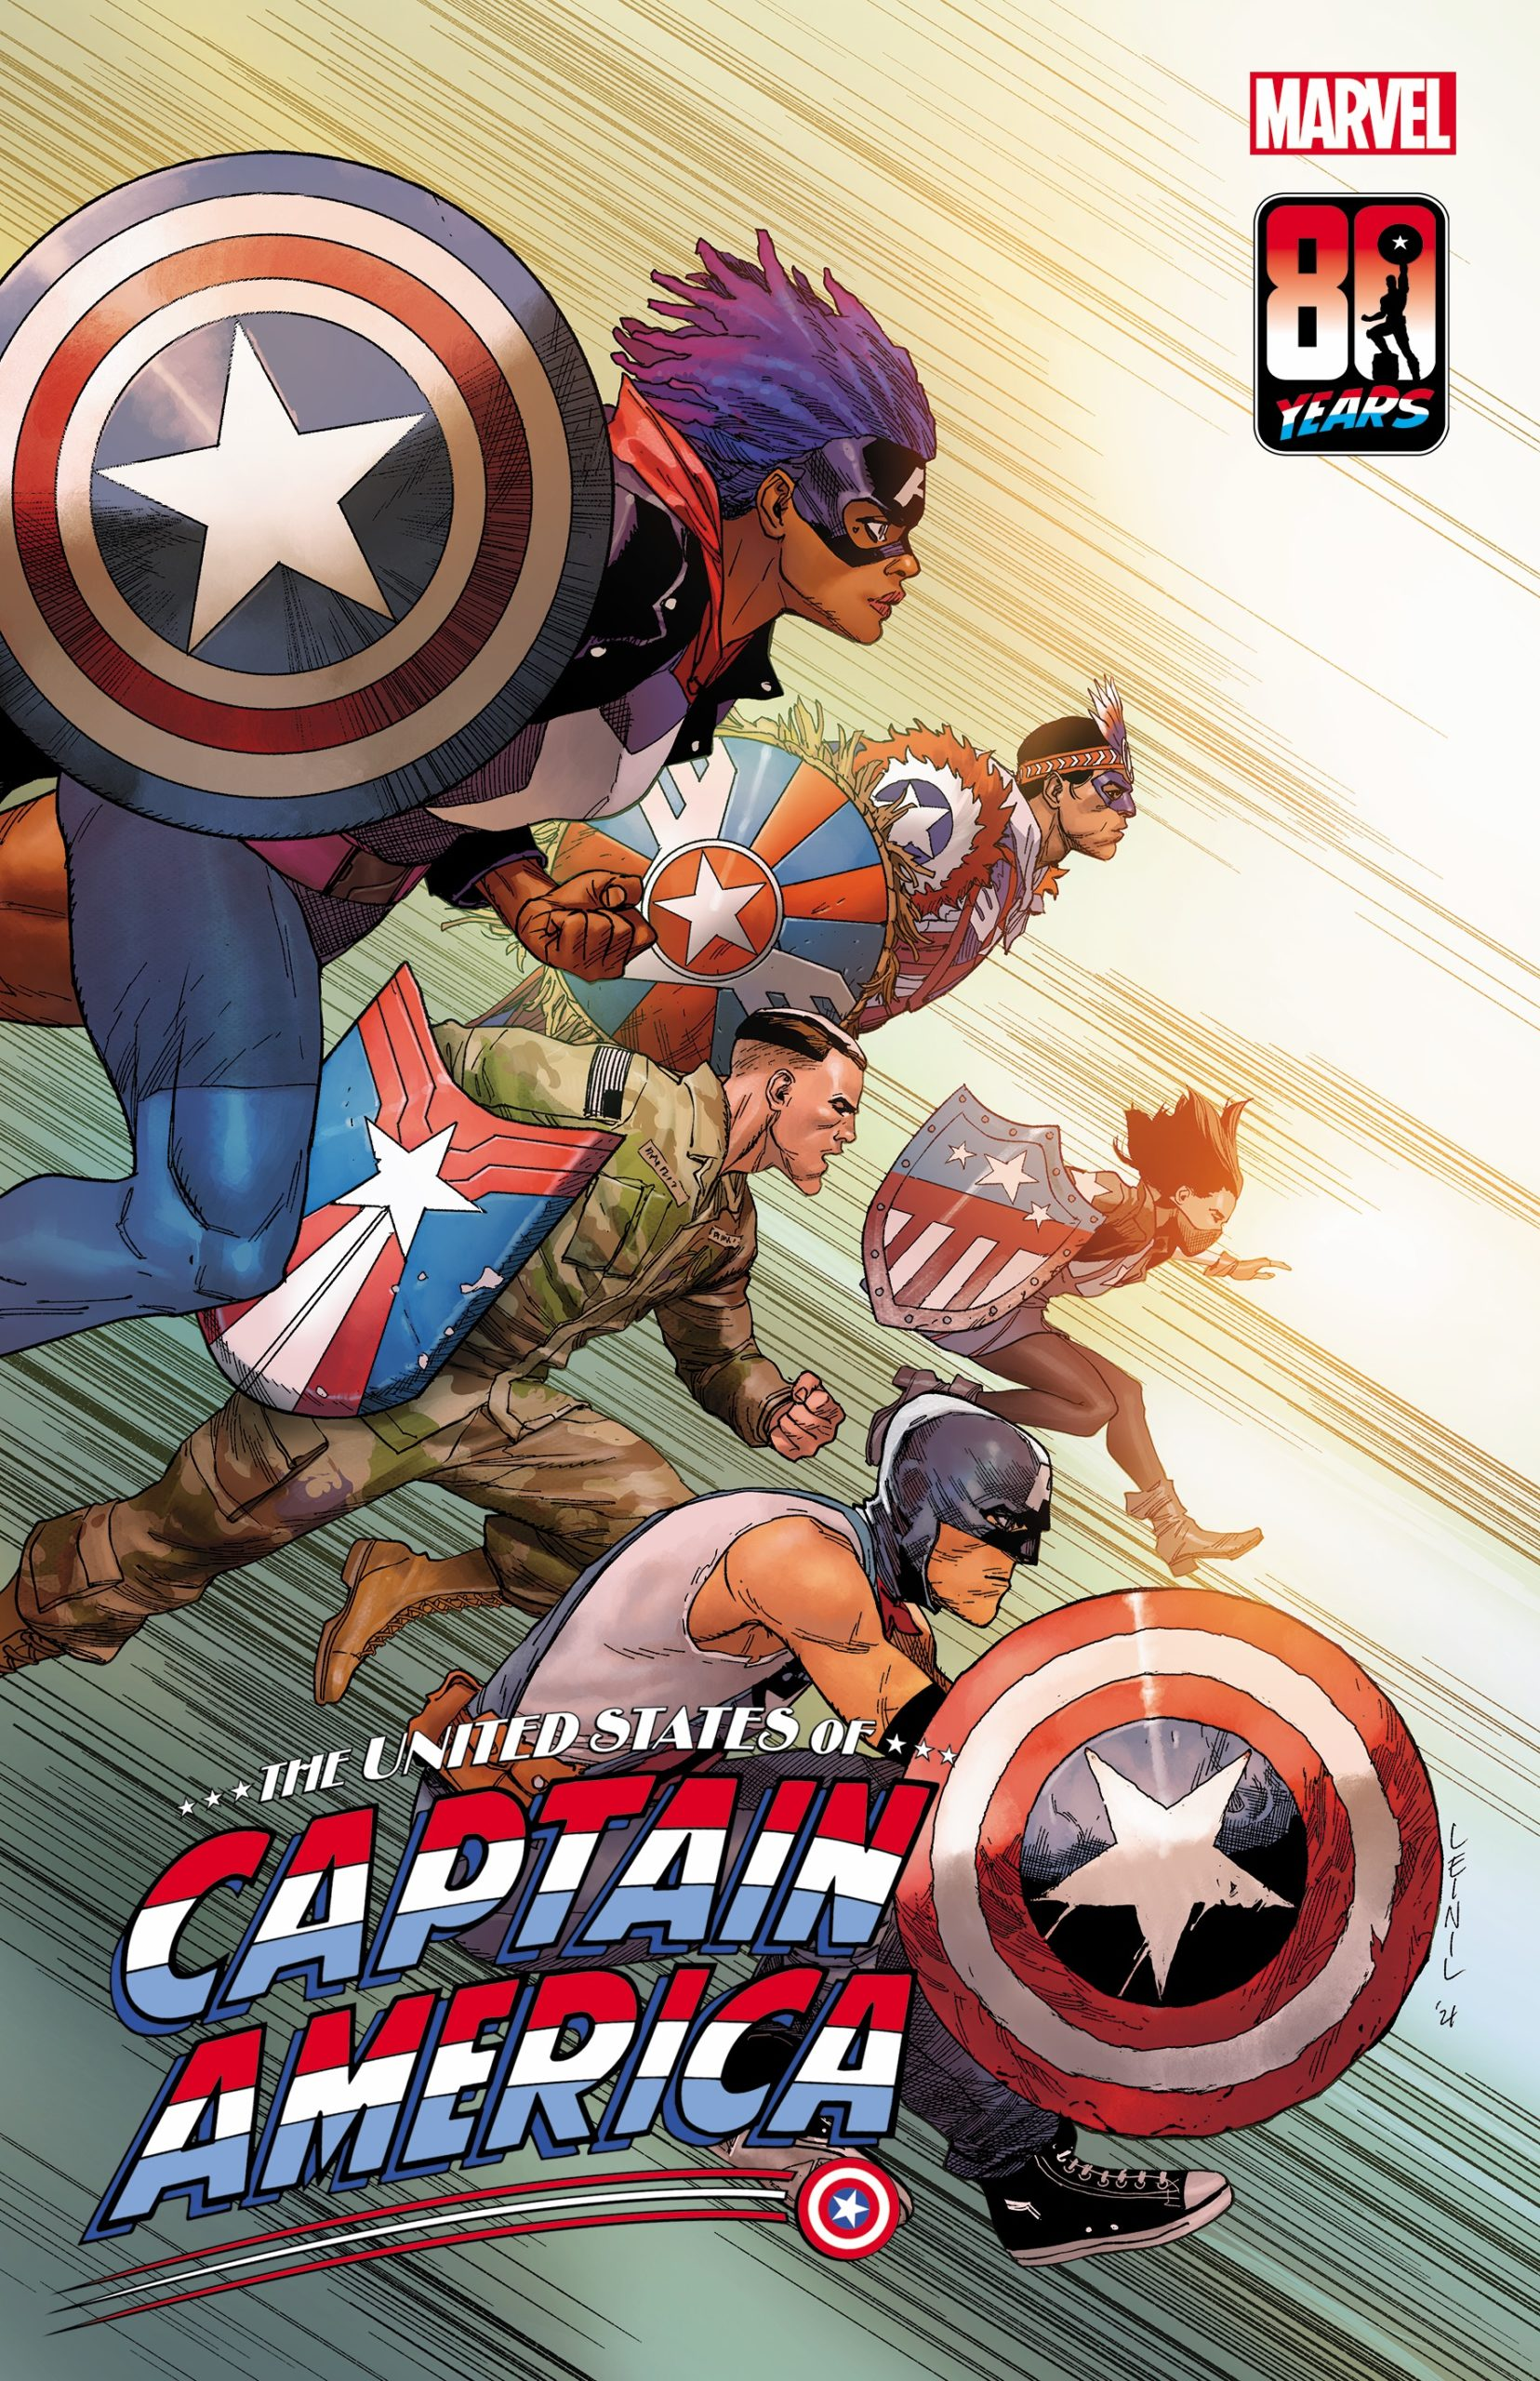 The United States of Captain America #5 variant by Leinil Yu